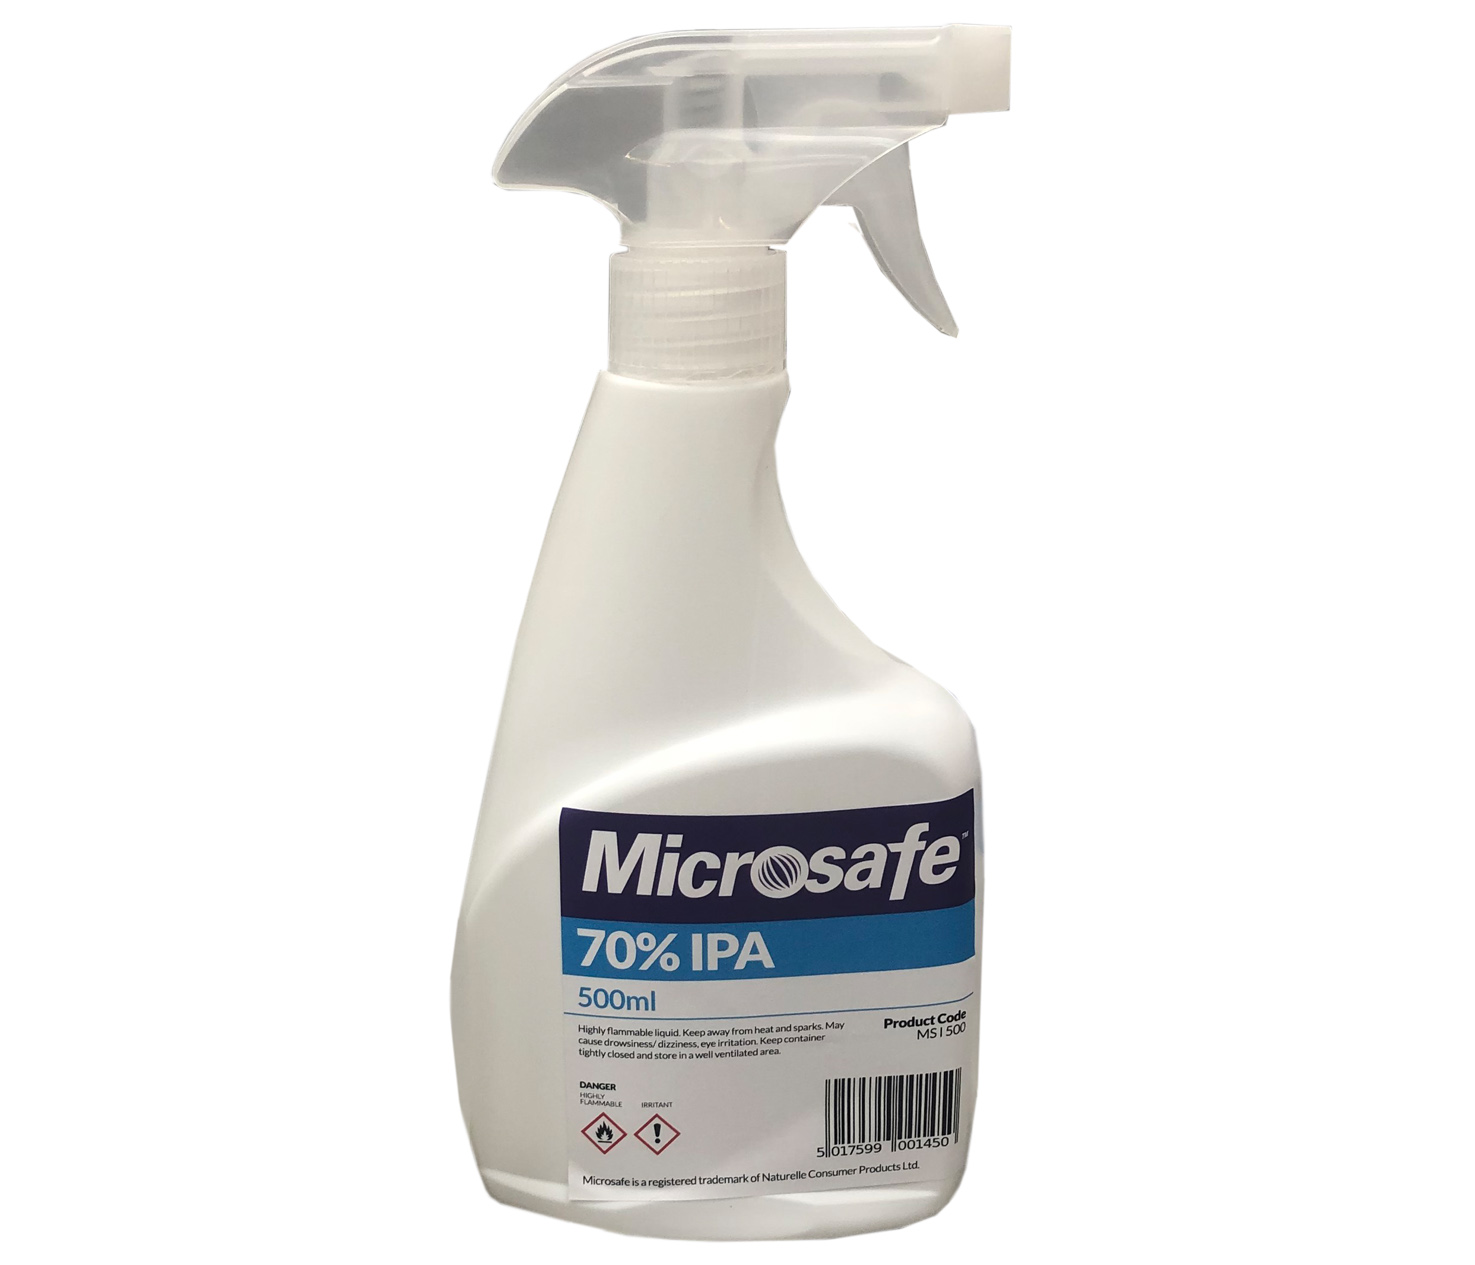 637236682645942282_microsafe_spray_500ml.jpg